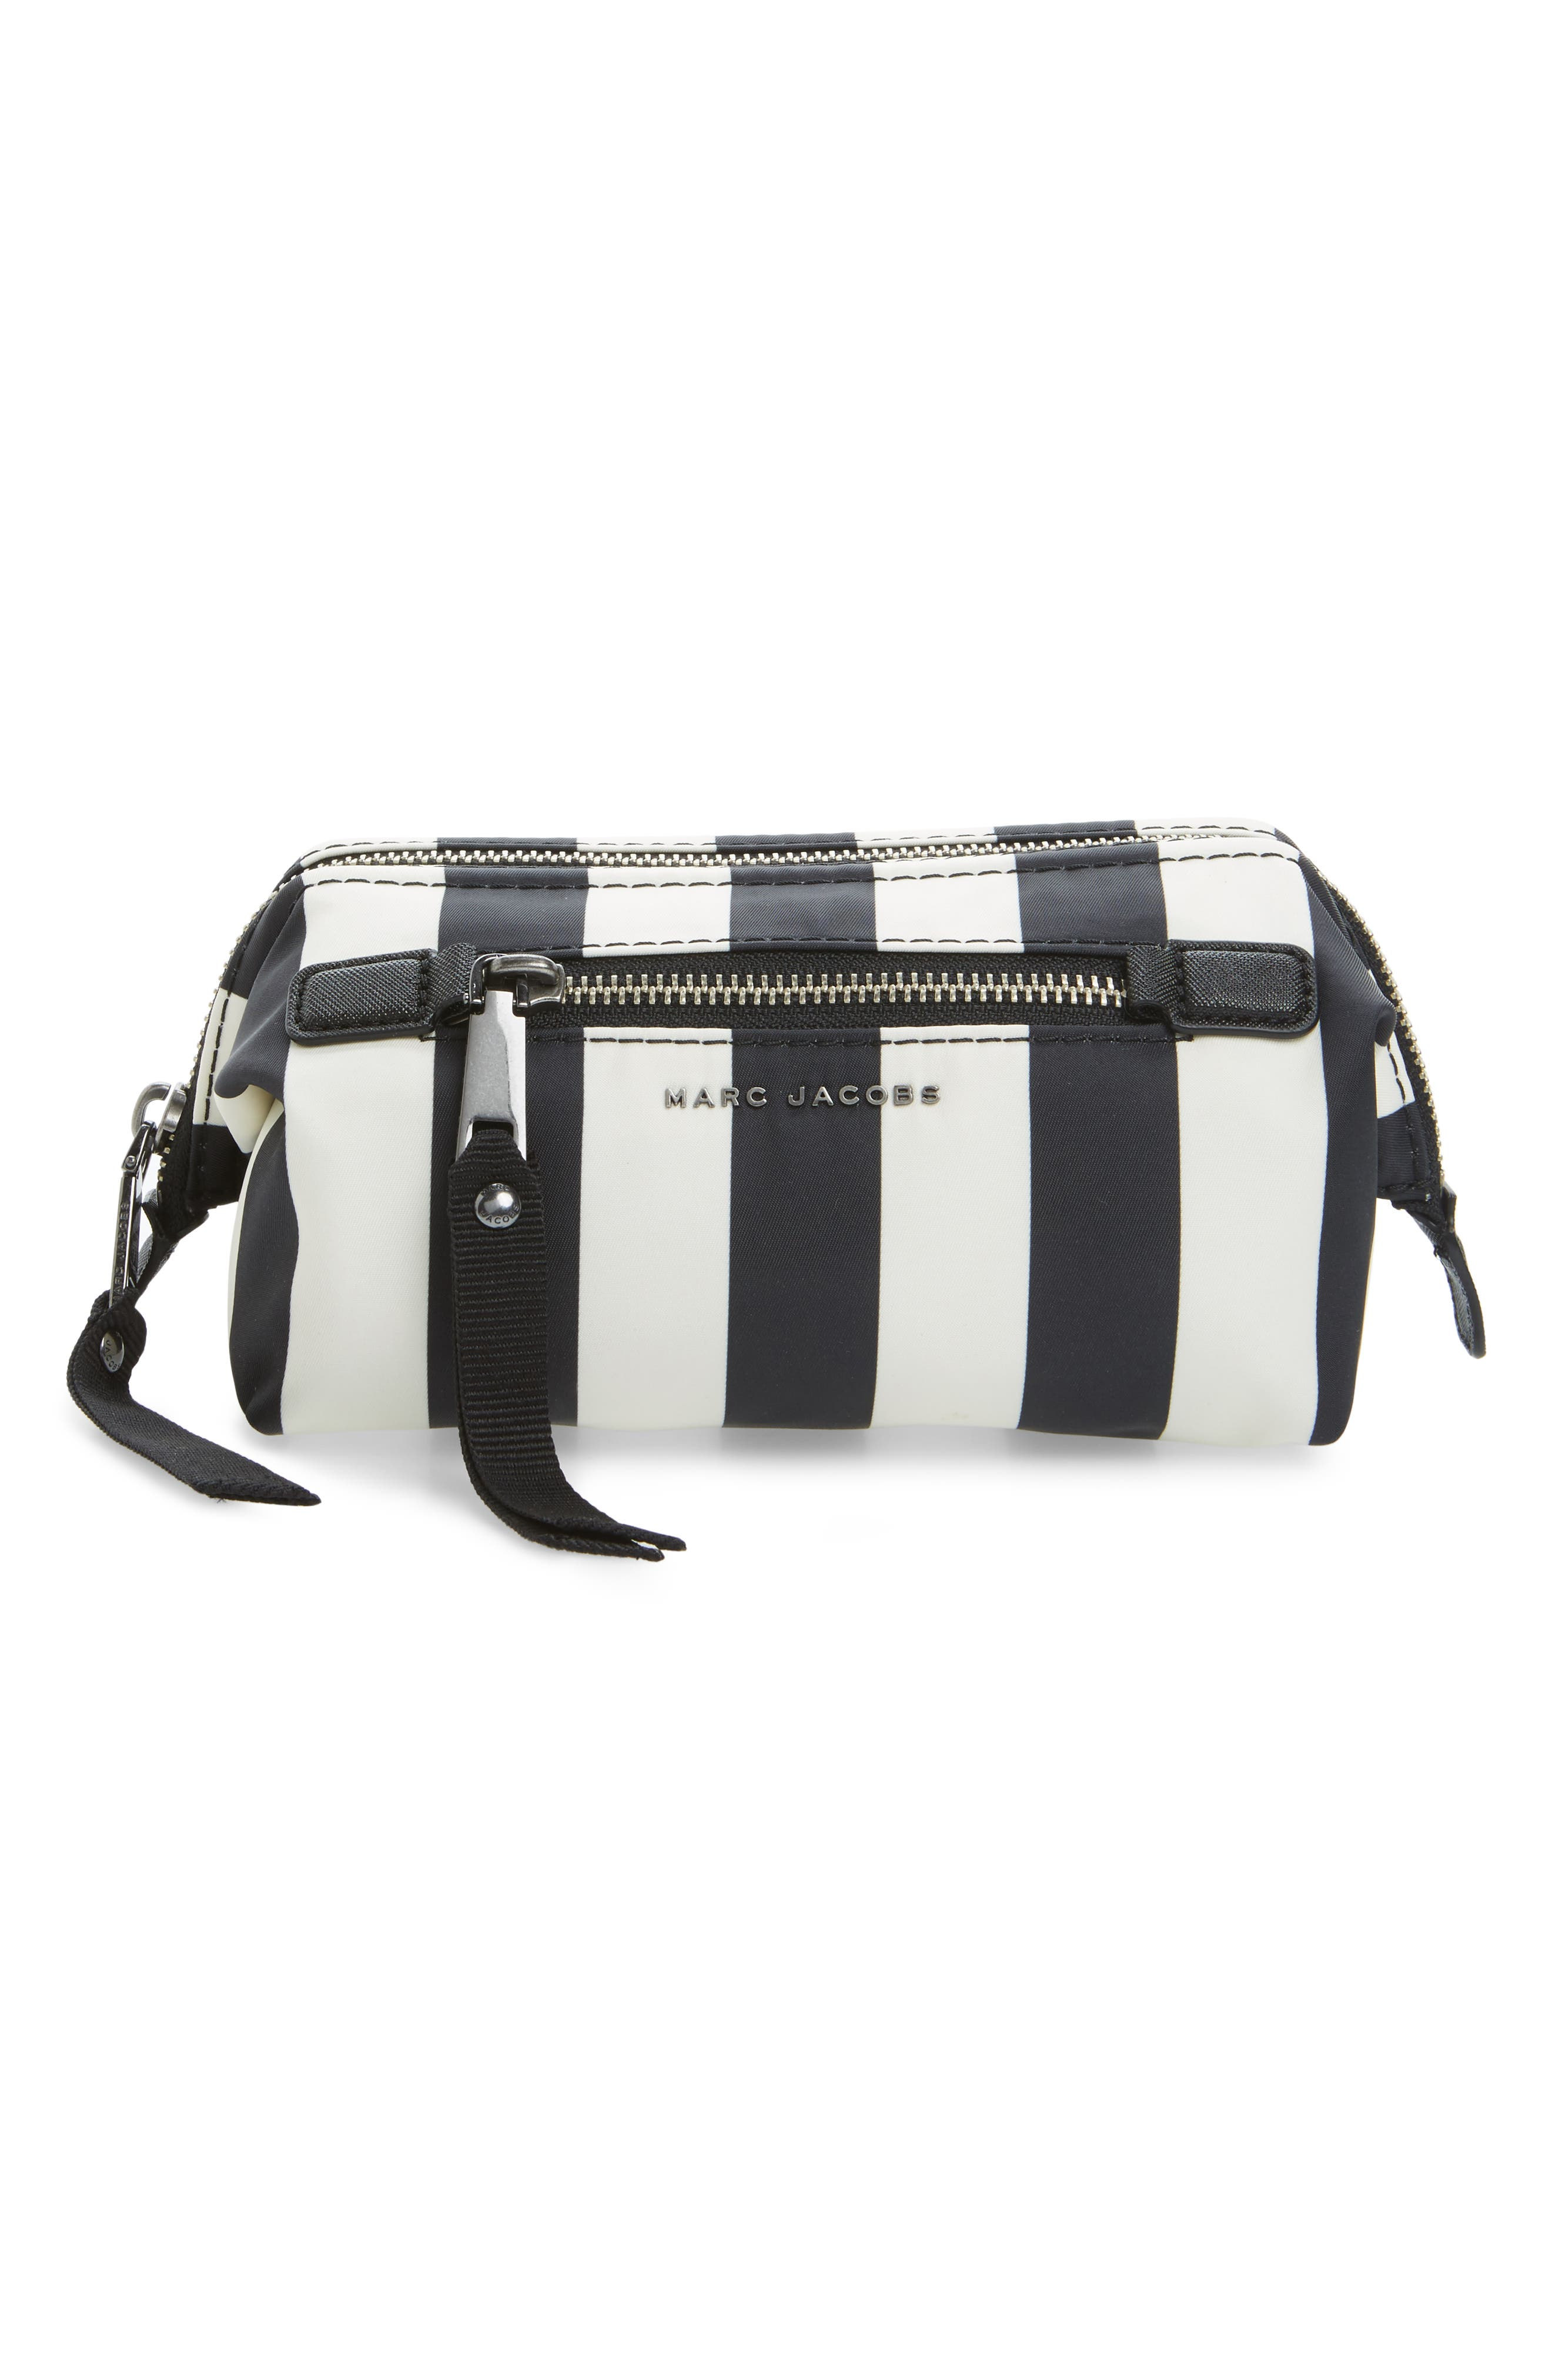 MARC JACOBS Stripes Trooper Cosmetics Bag